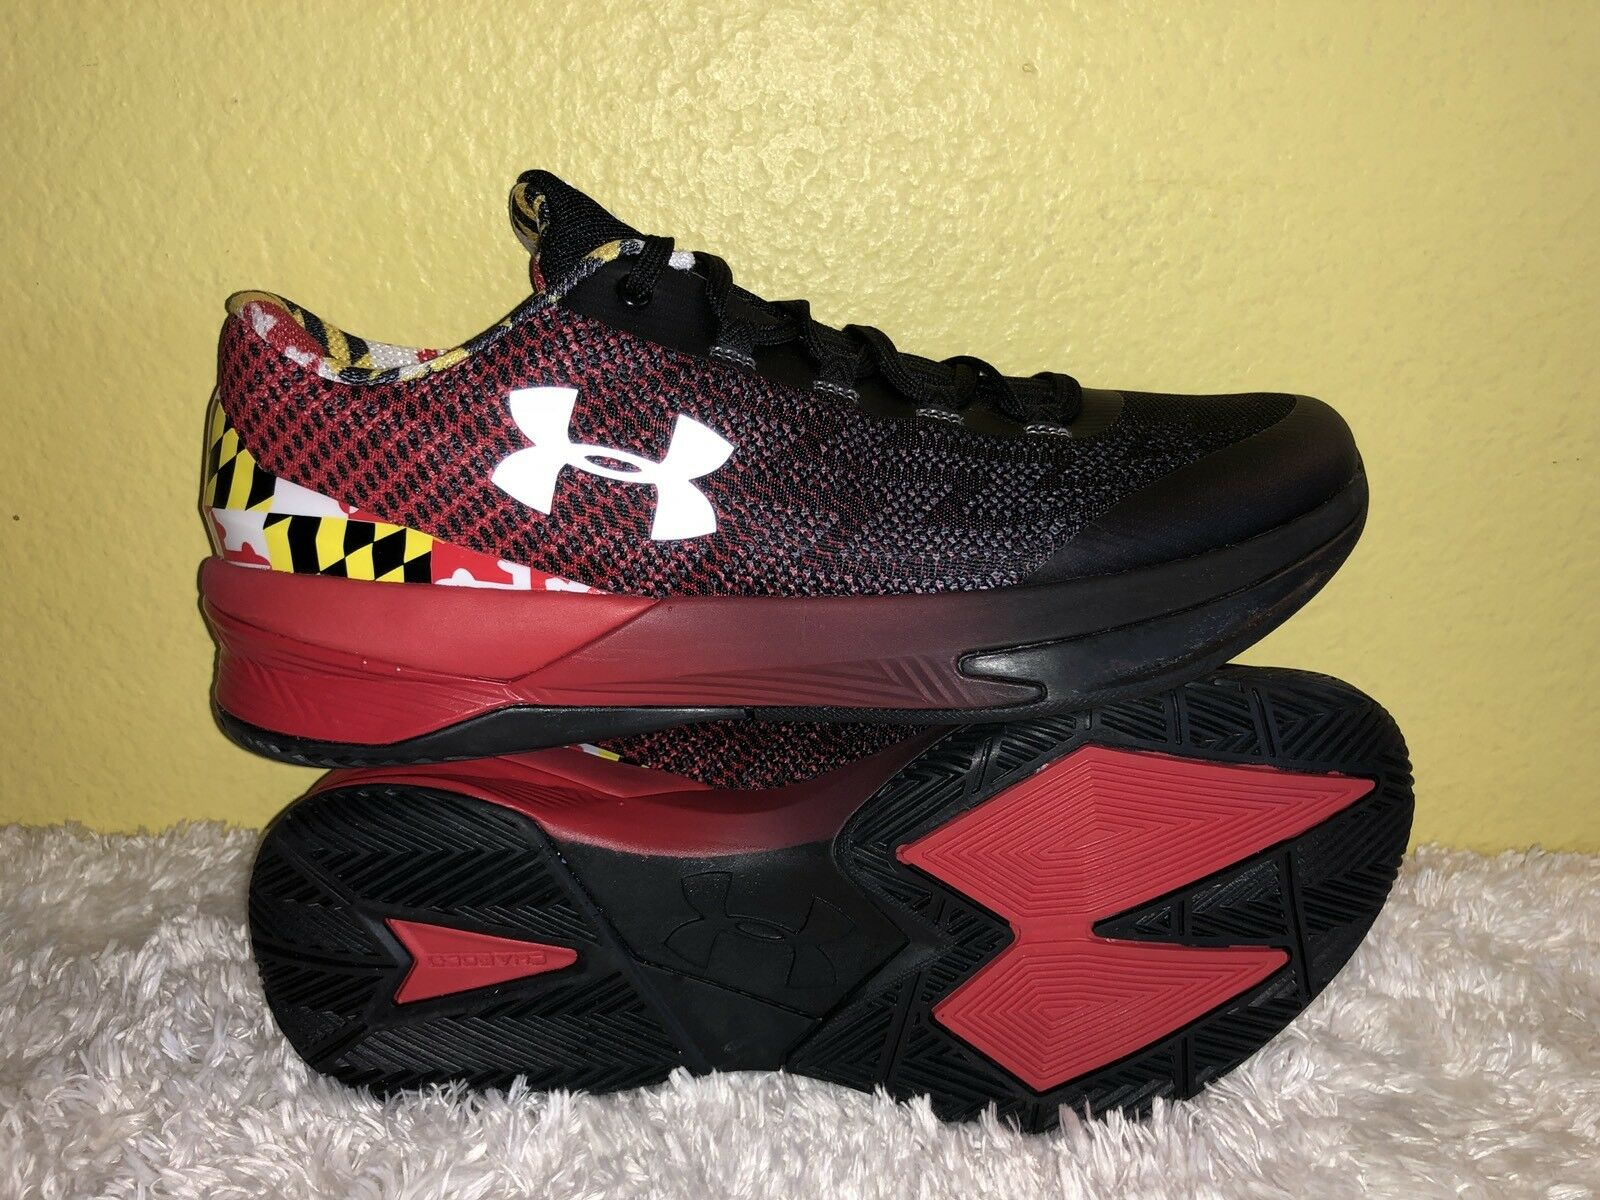 check out cfc27 57eeb Men s Under Under Under Armour Charged Controller Maryland Terrapins  Athletic Shoes Size 9 abf405